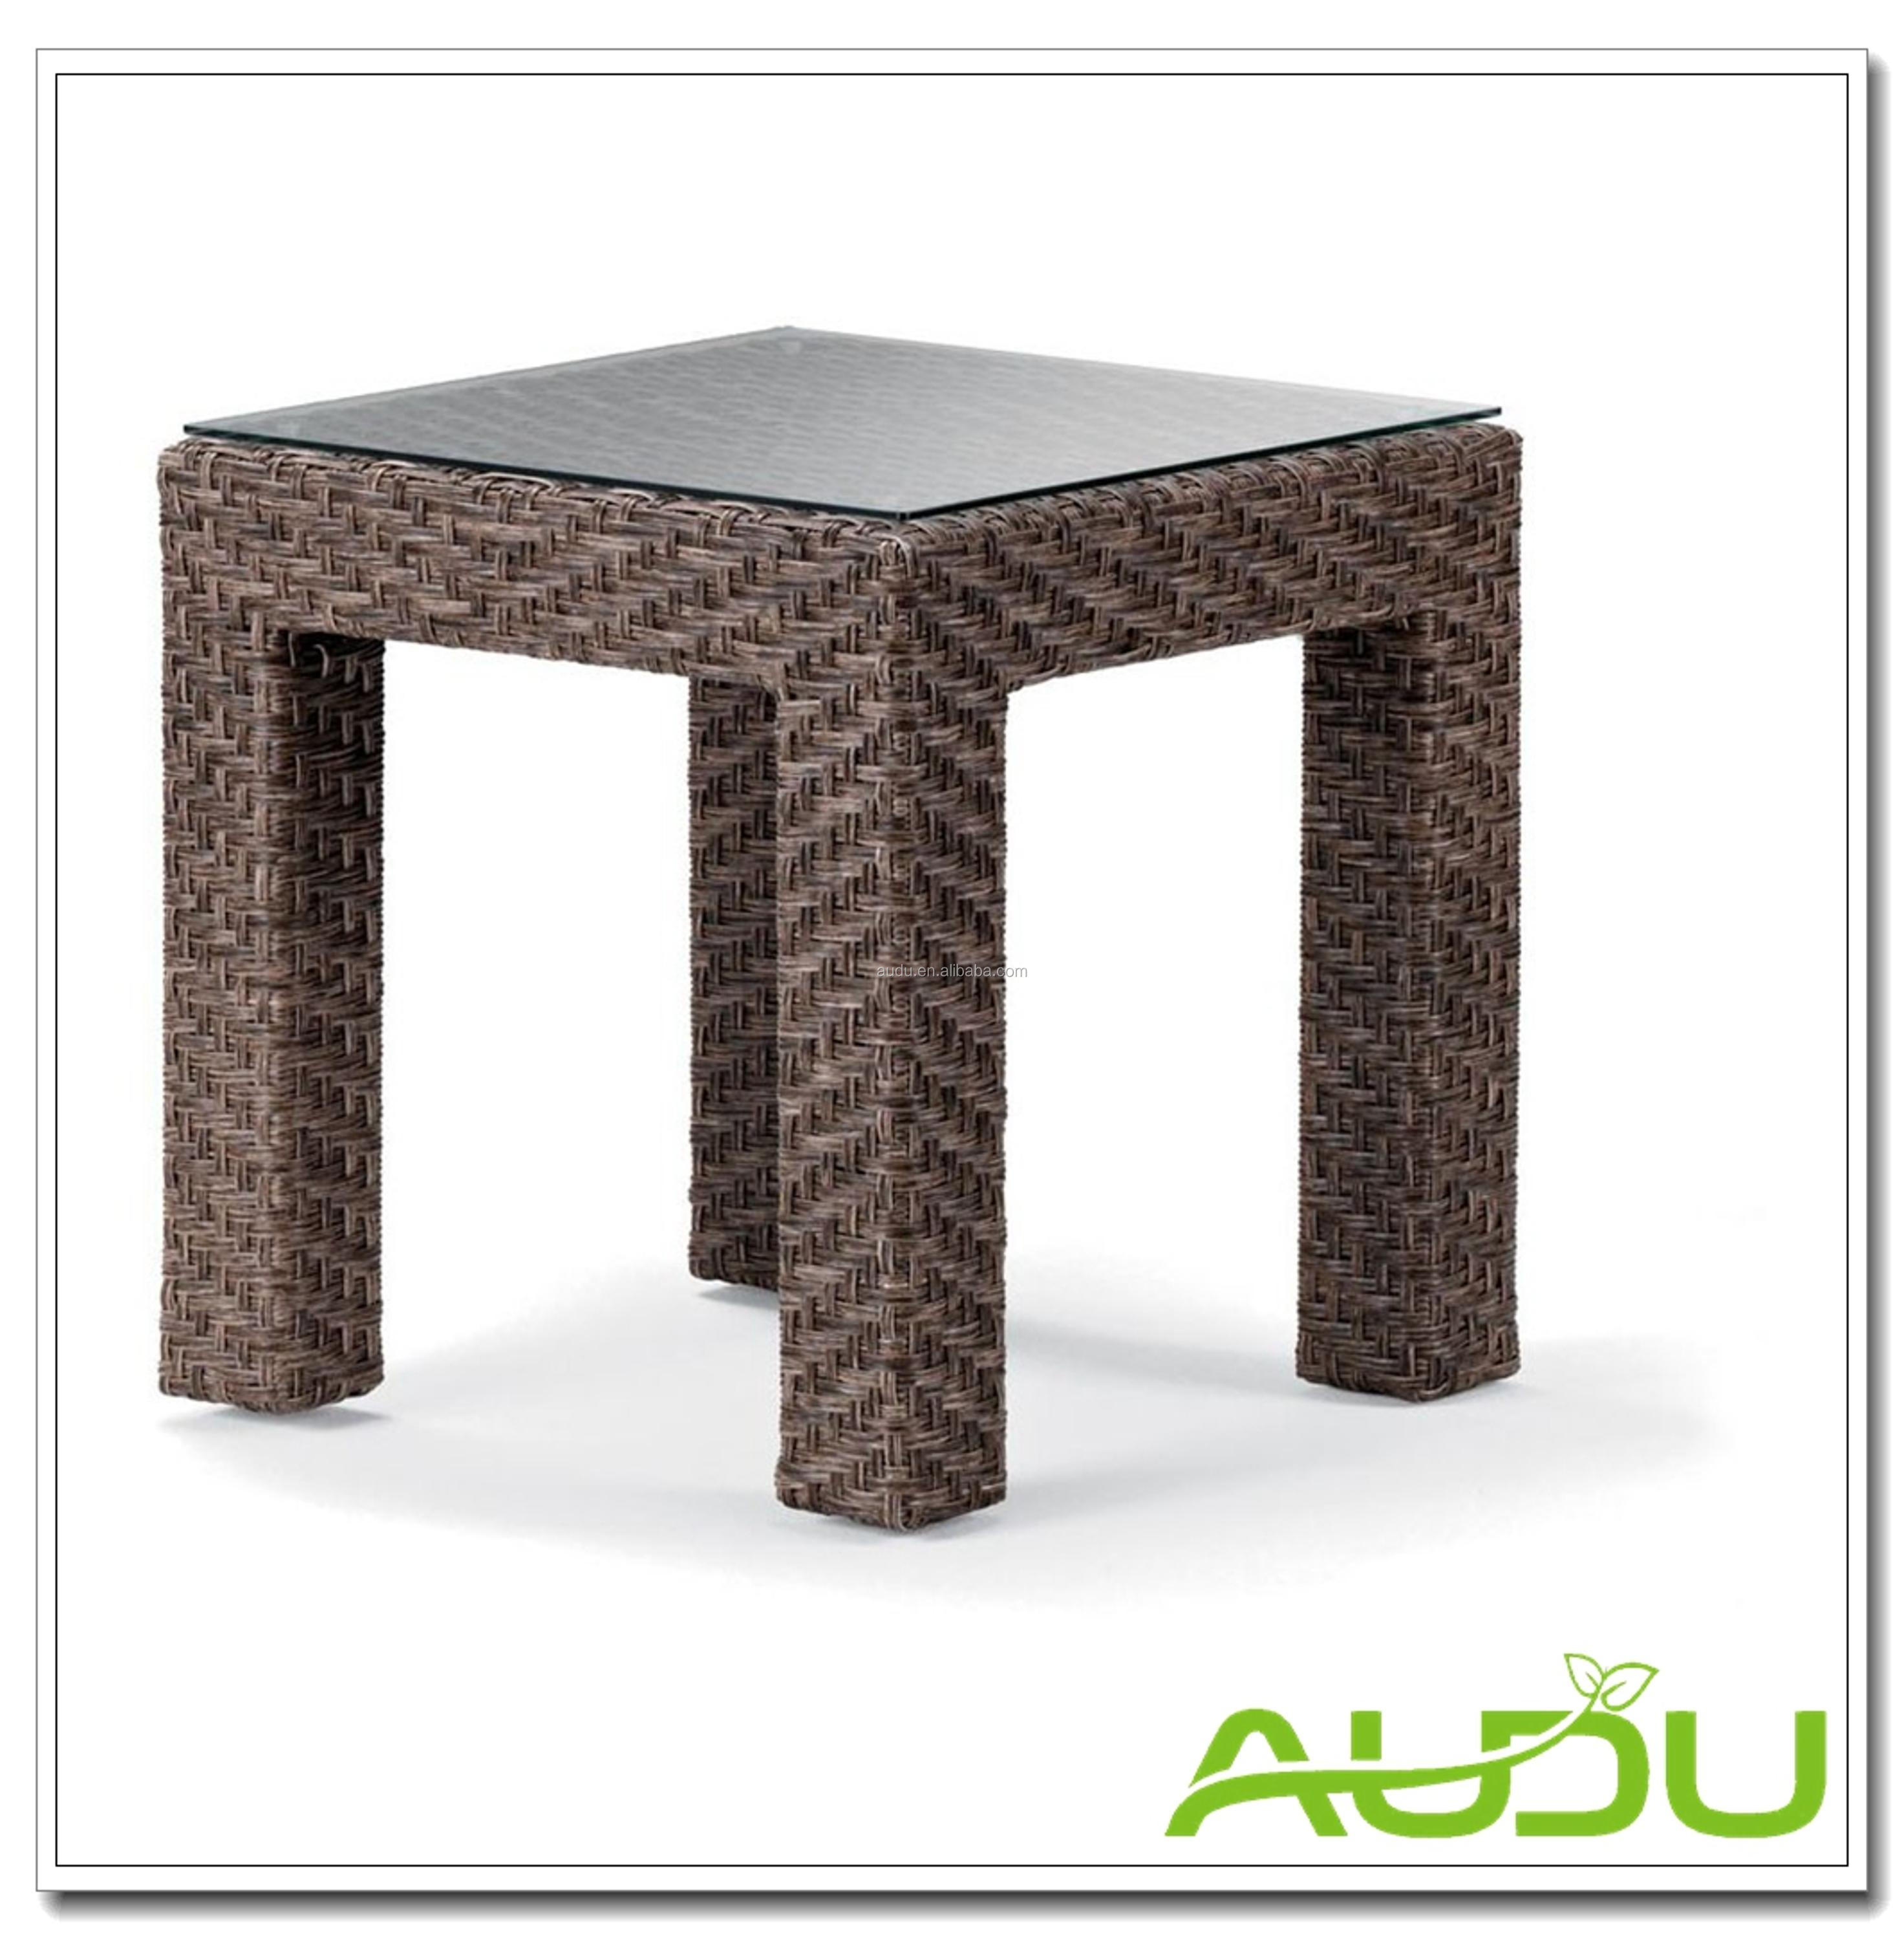 Audu 4 Persons Brown Rattan Patio Furniture Garden For USA Market